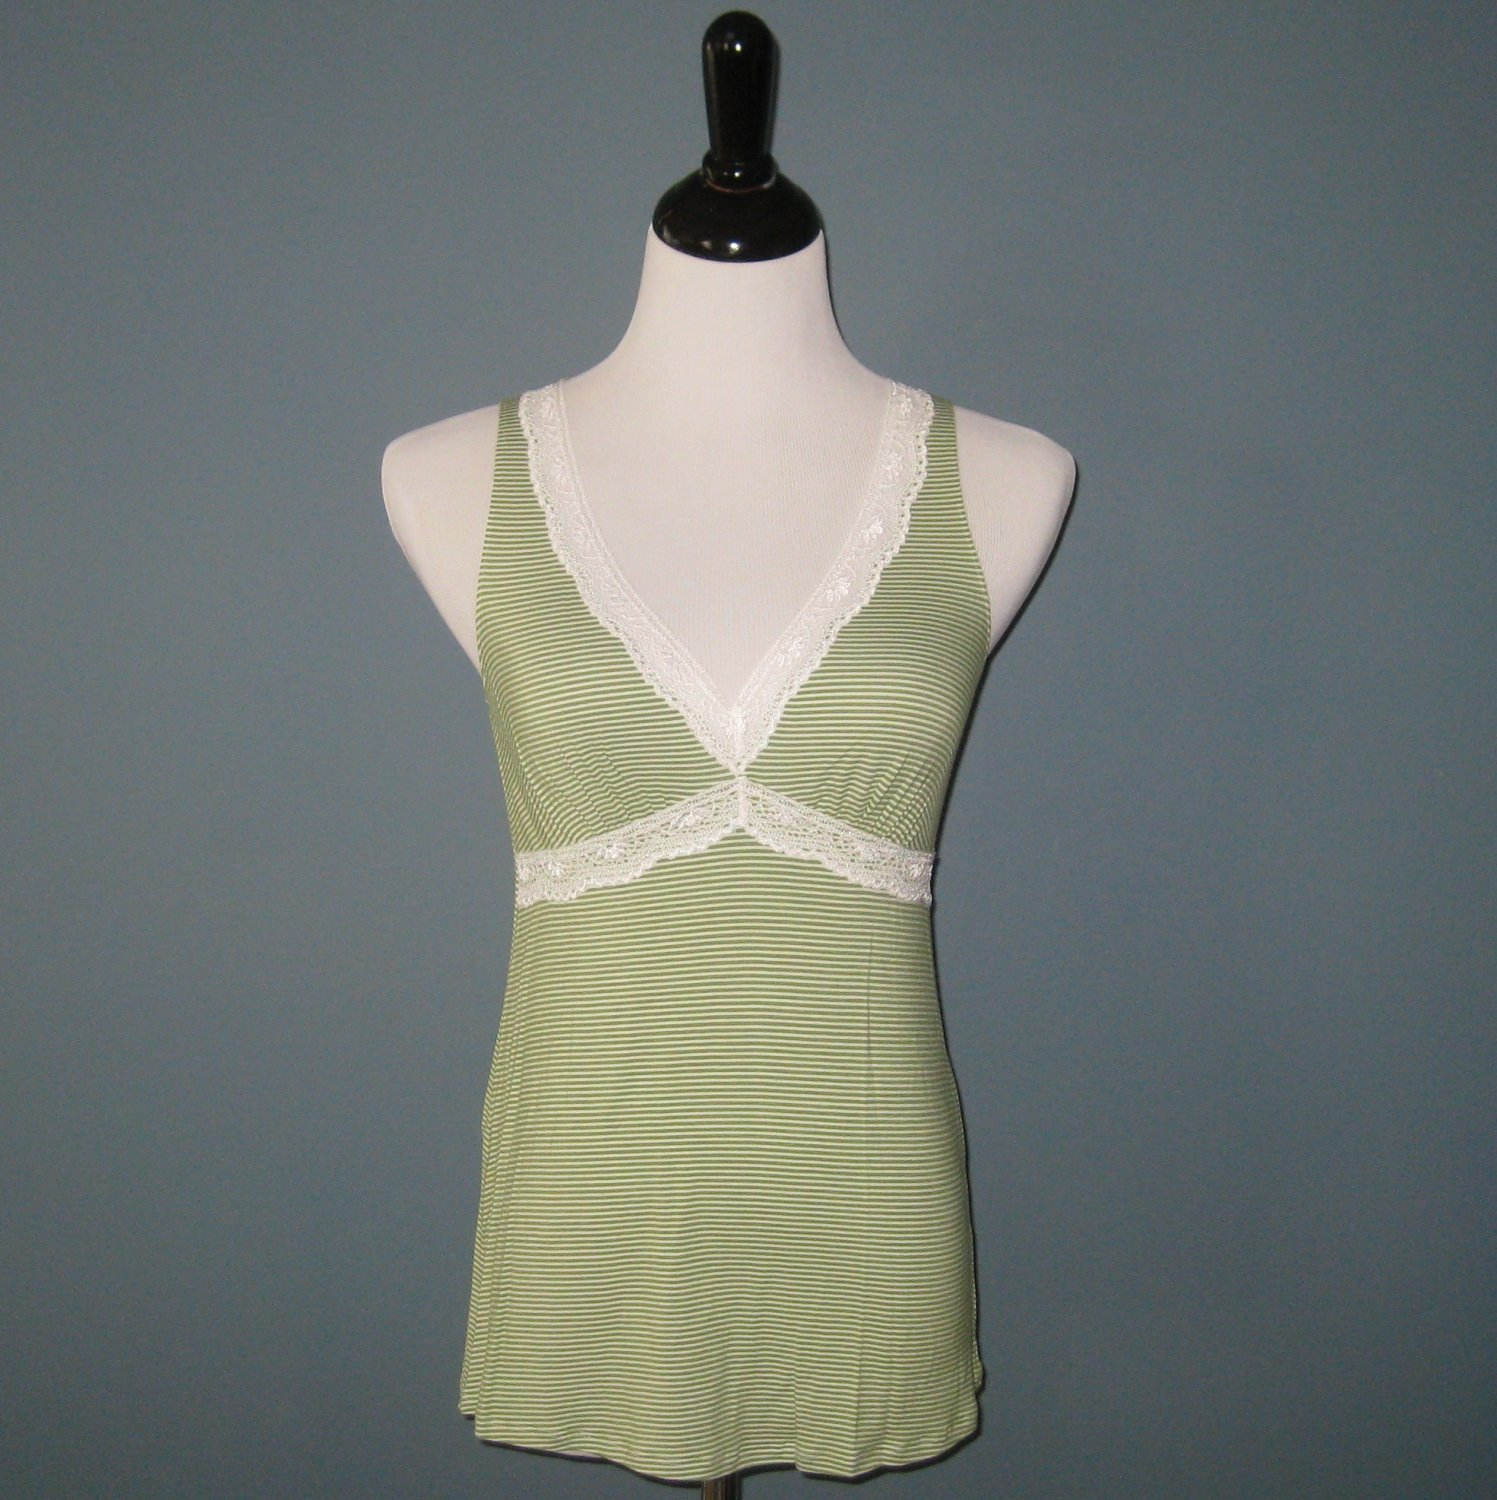 NWT Elle Macpherson Green Procession Bamboo Blend Sleep Tank Cami Camisole - M